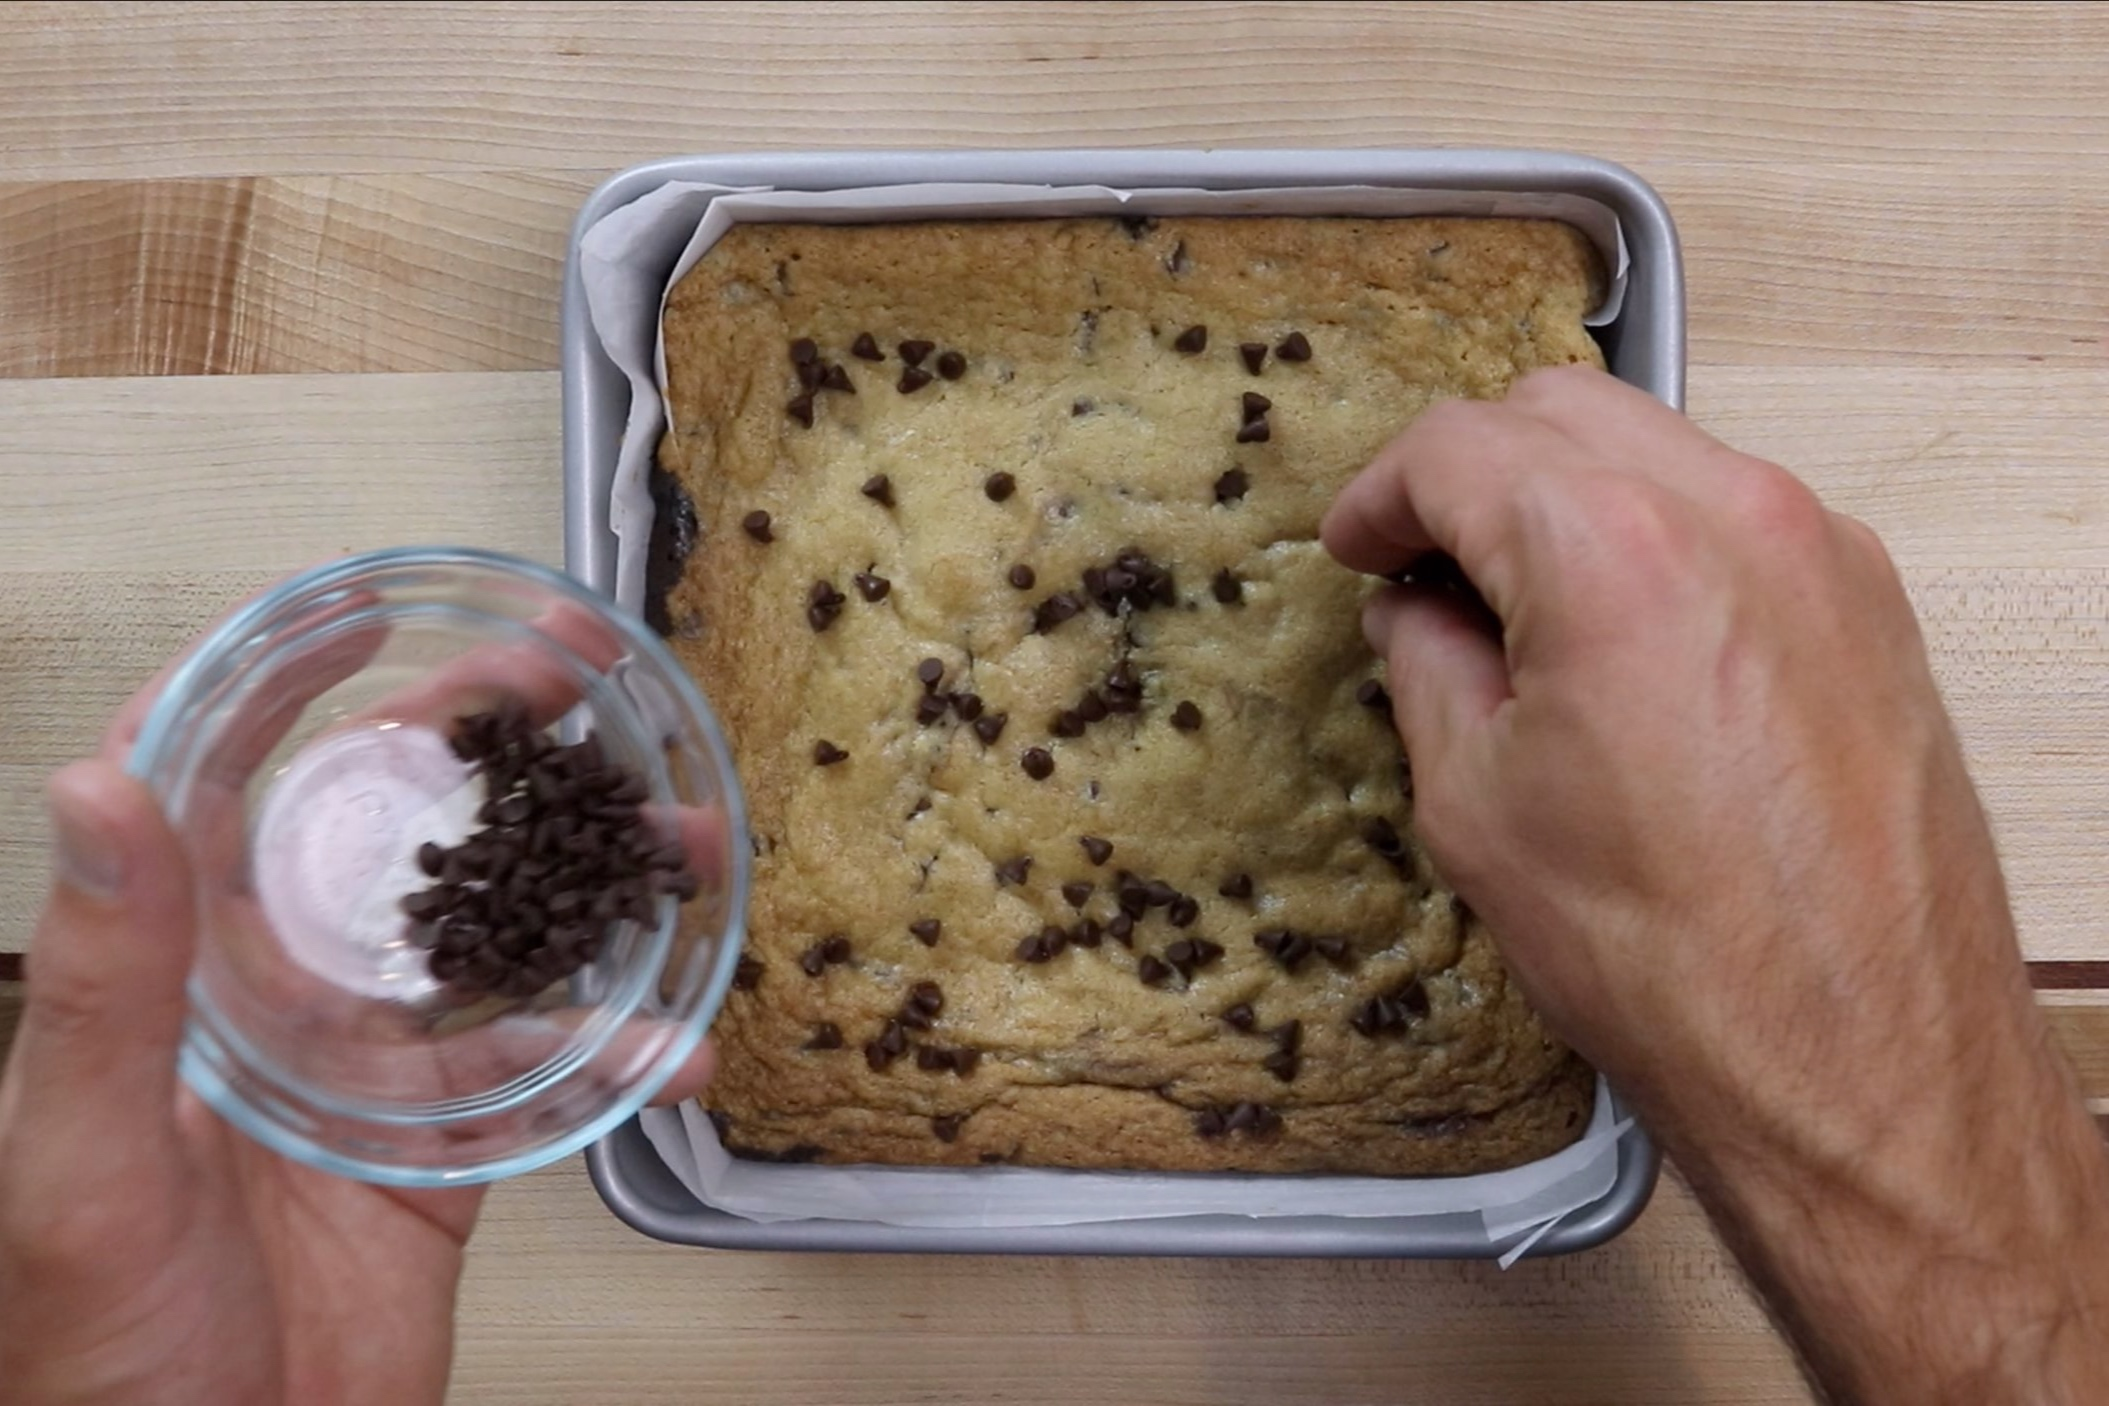 15. Remove from oven and sprinkle a few chocolate chips on top of the baked brookies. -